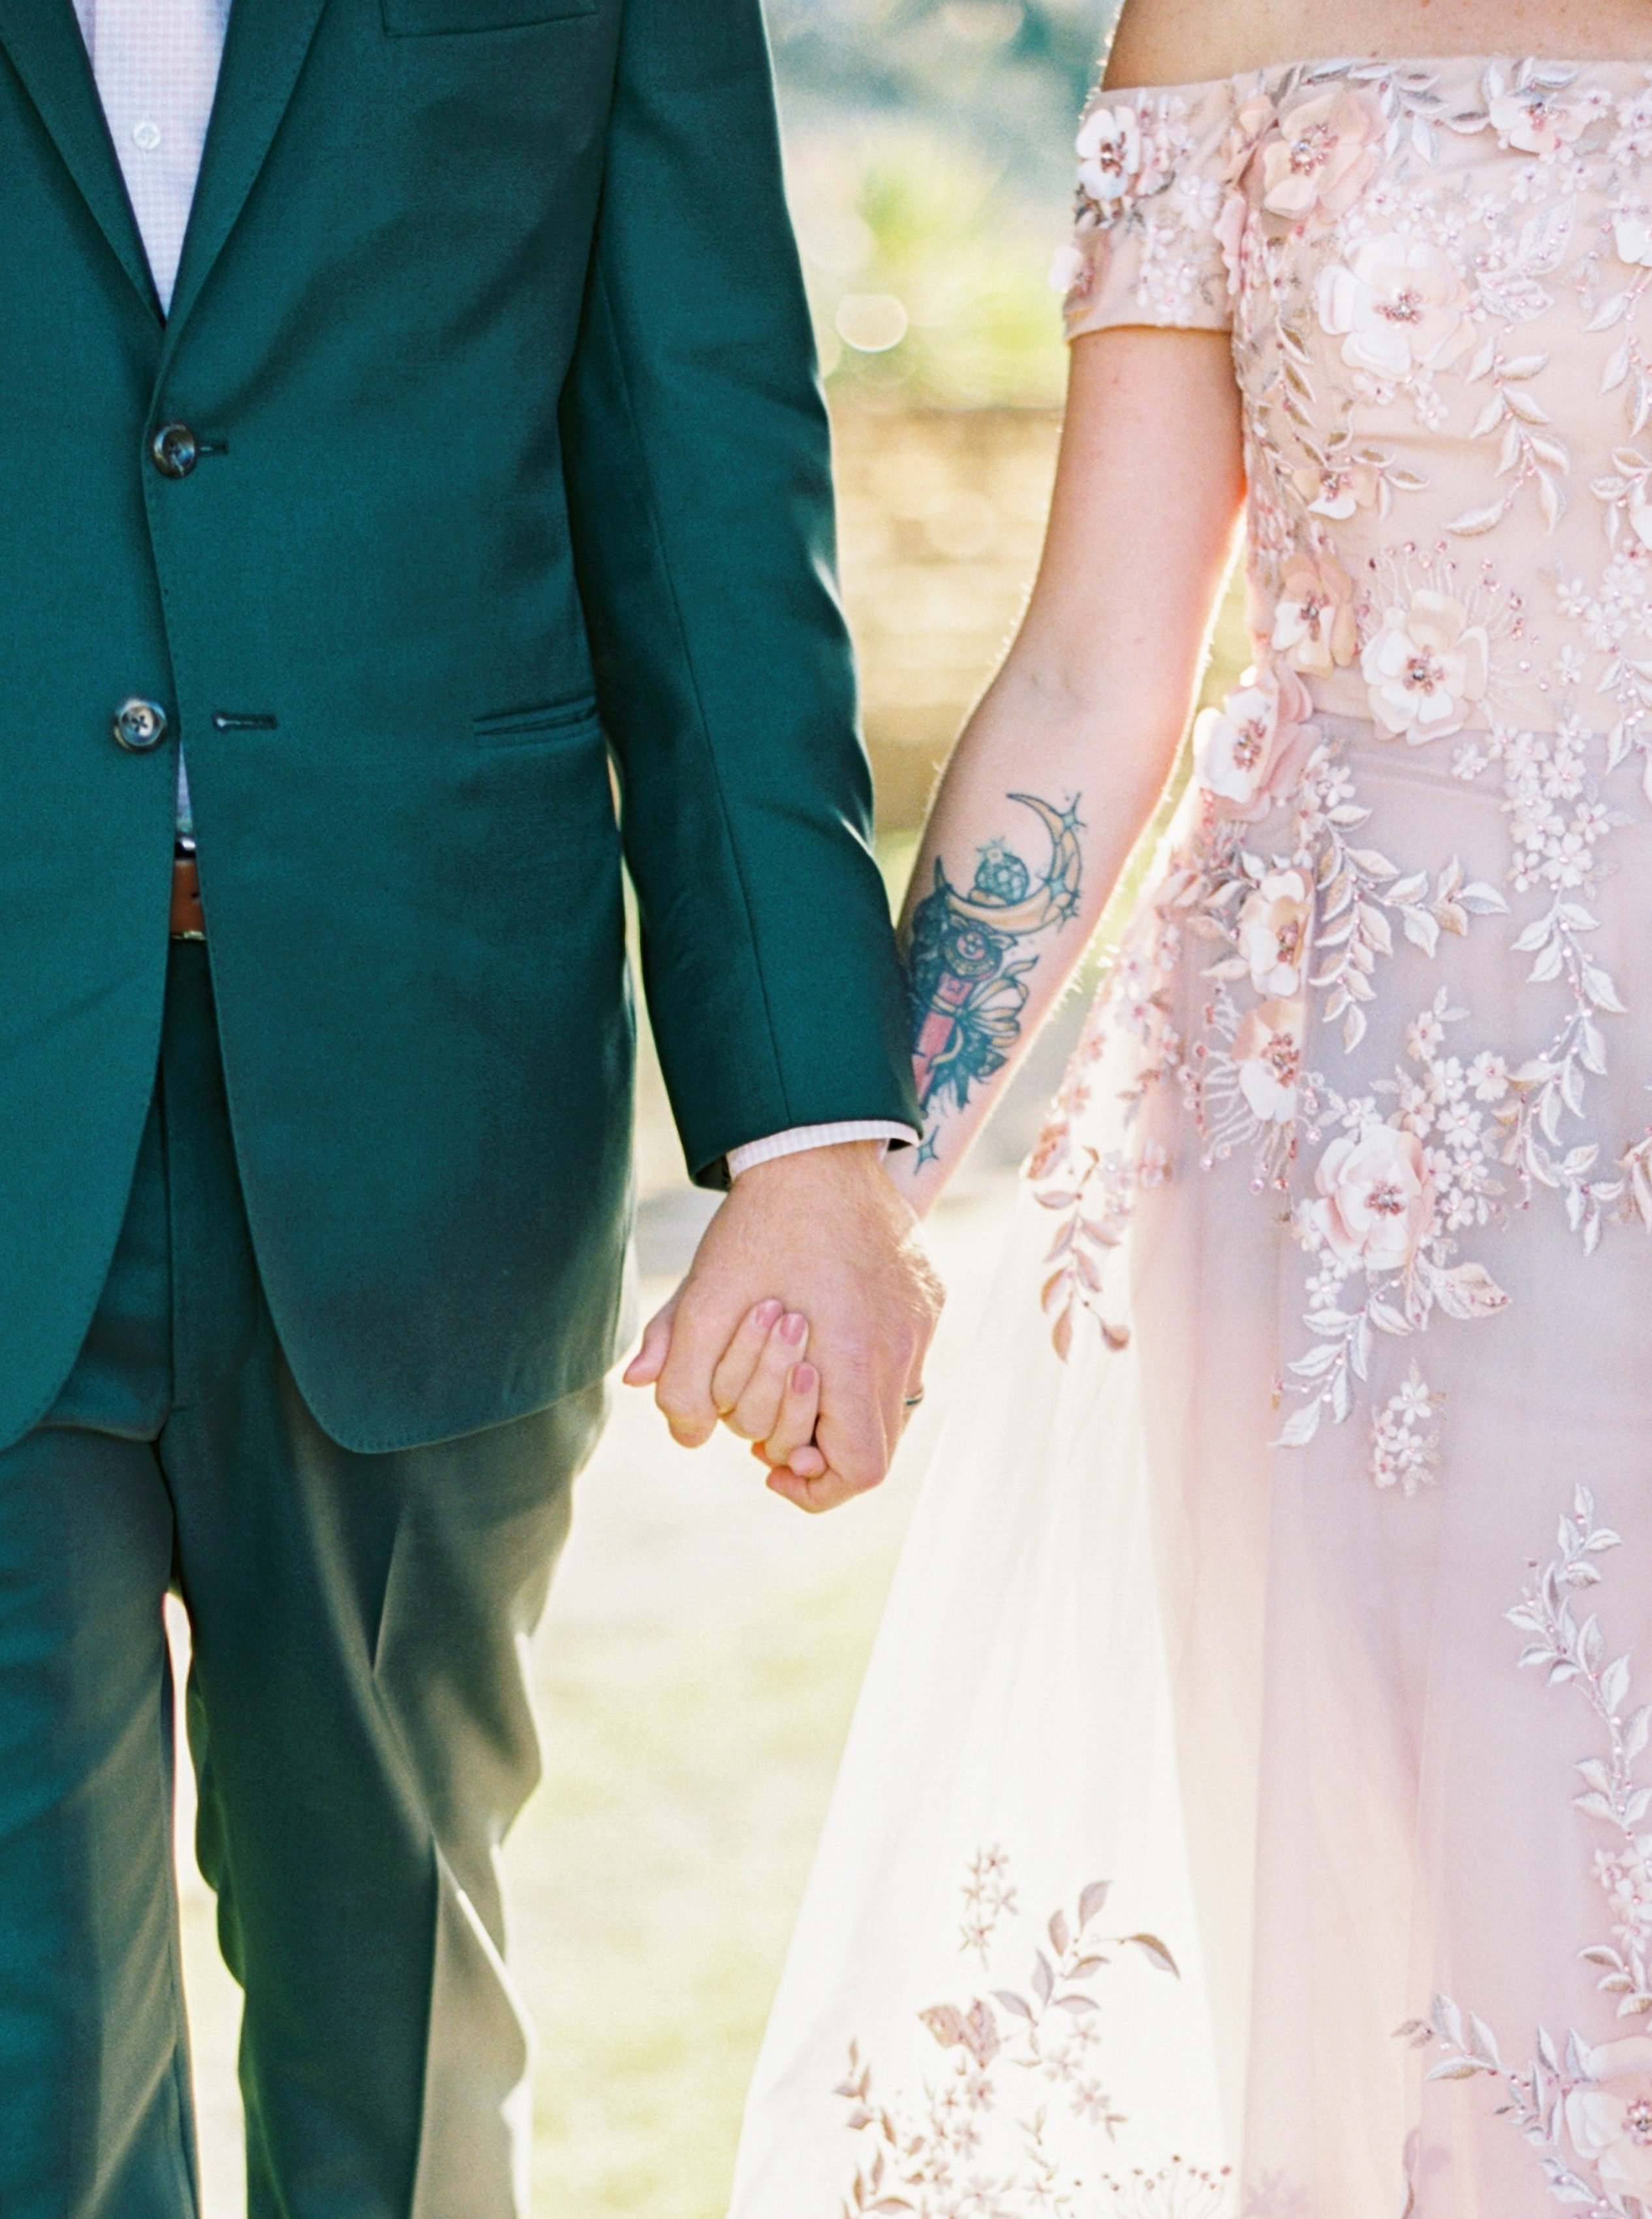 catherine john micro wedding couple hands perry vaile